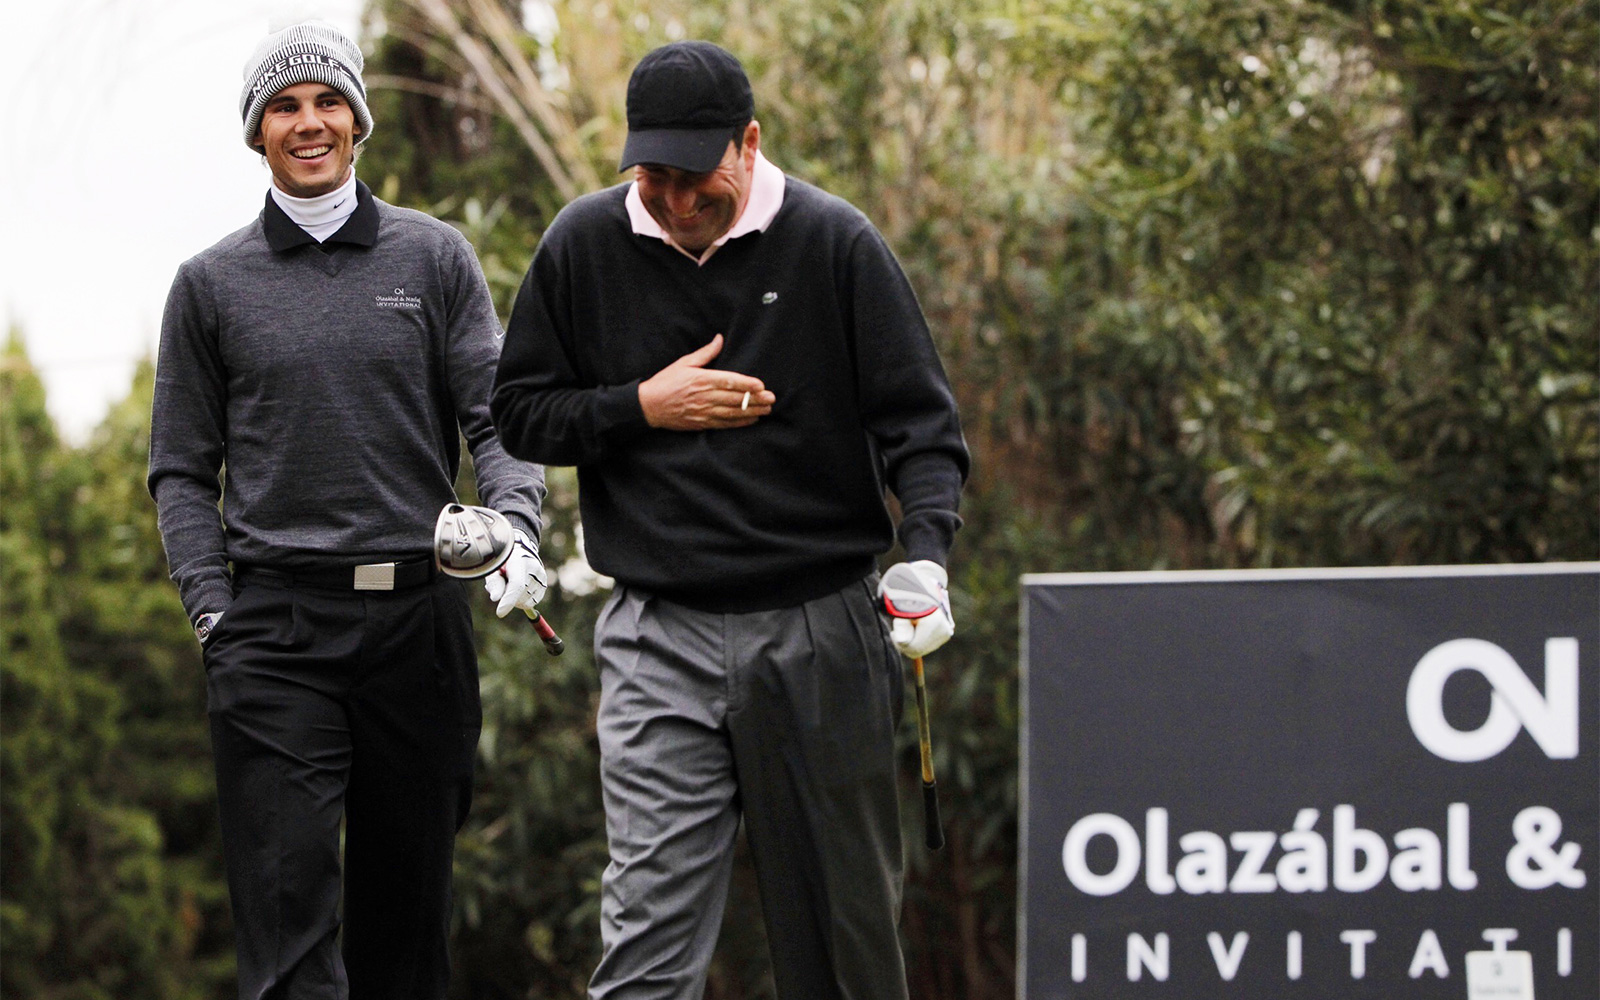 Golf and solidarity together in the Olazábal&Nadal Invitational